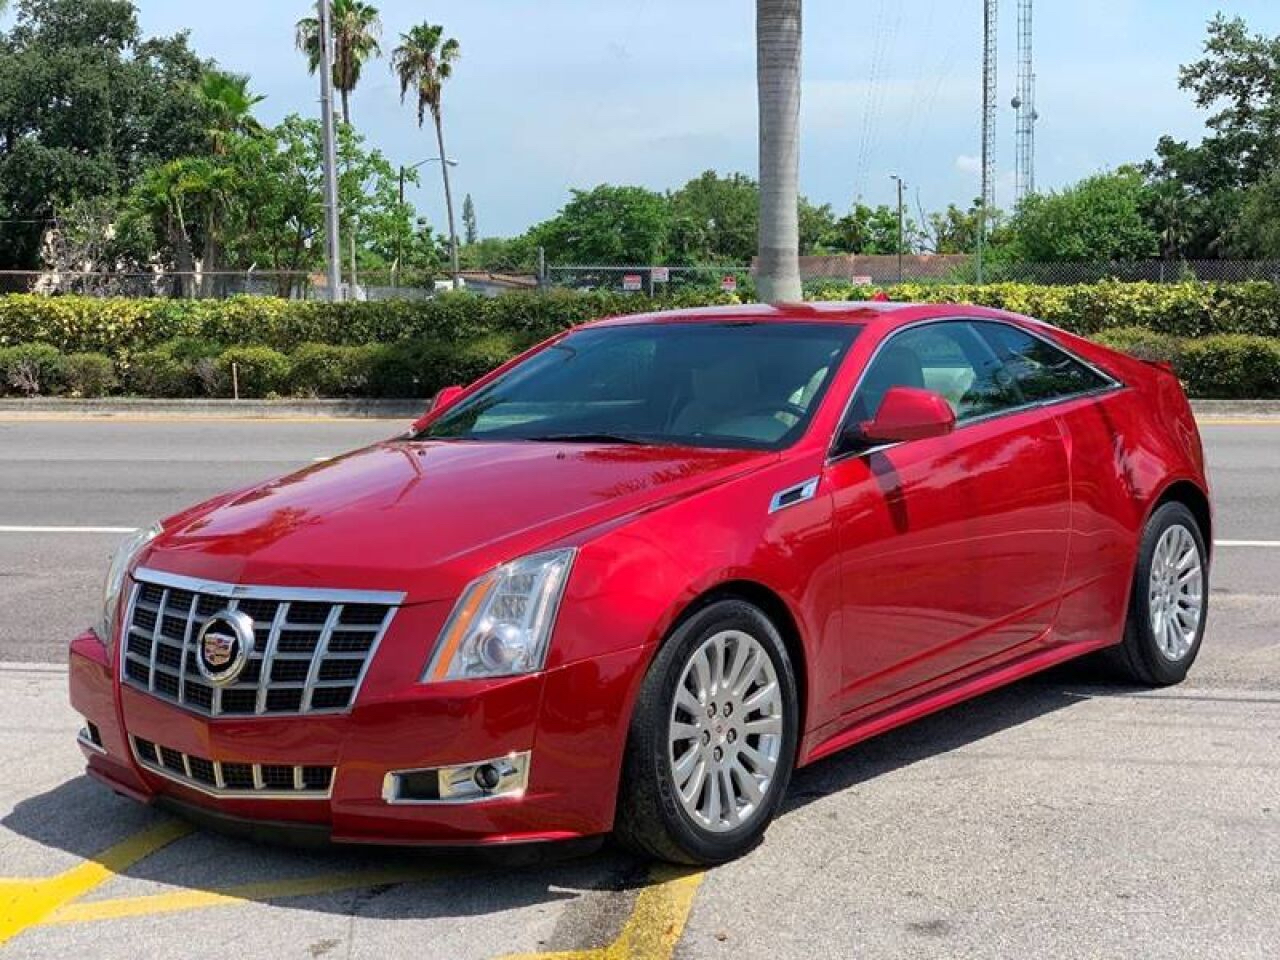 Cadillac CTS Performance Coupe 2012